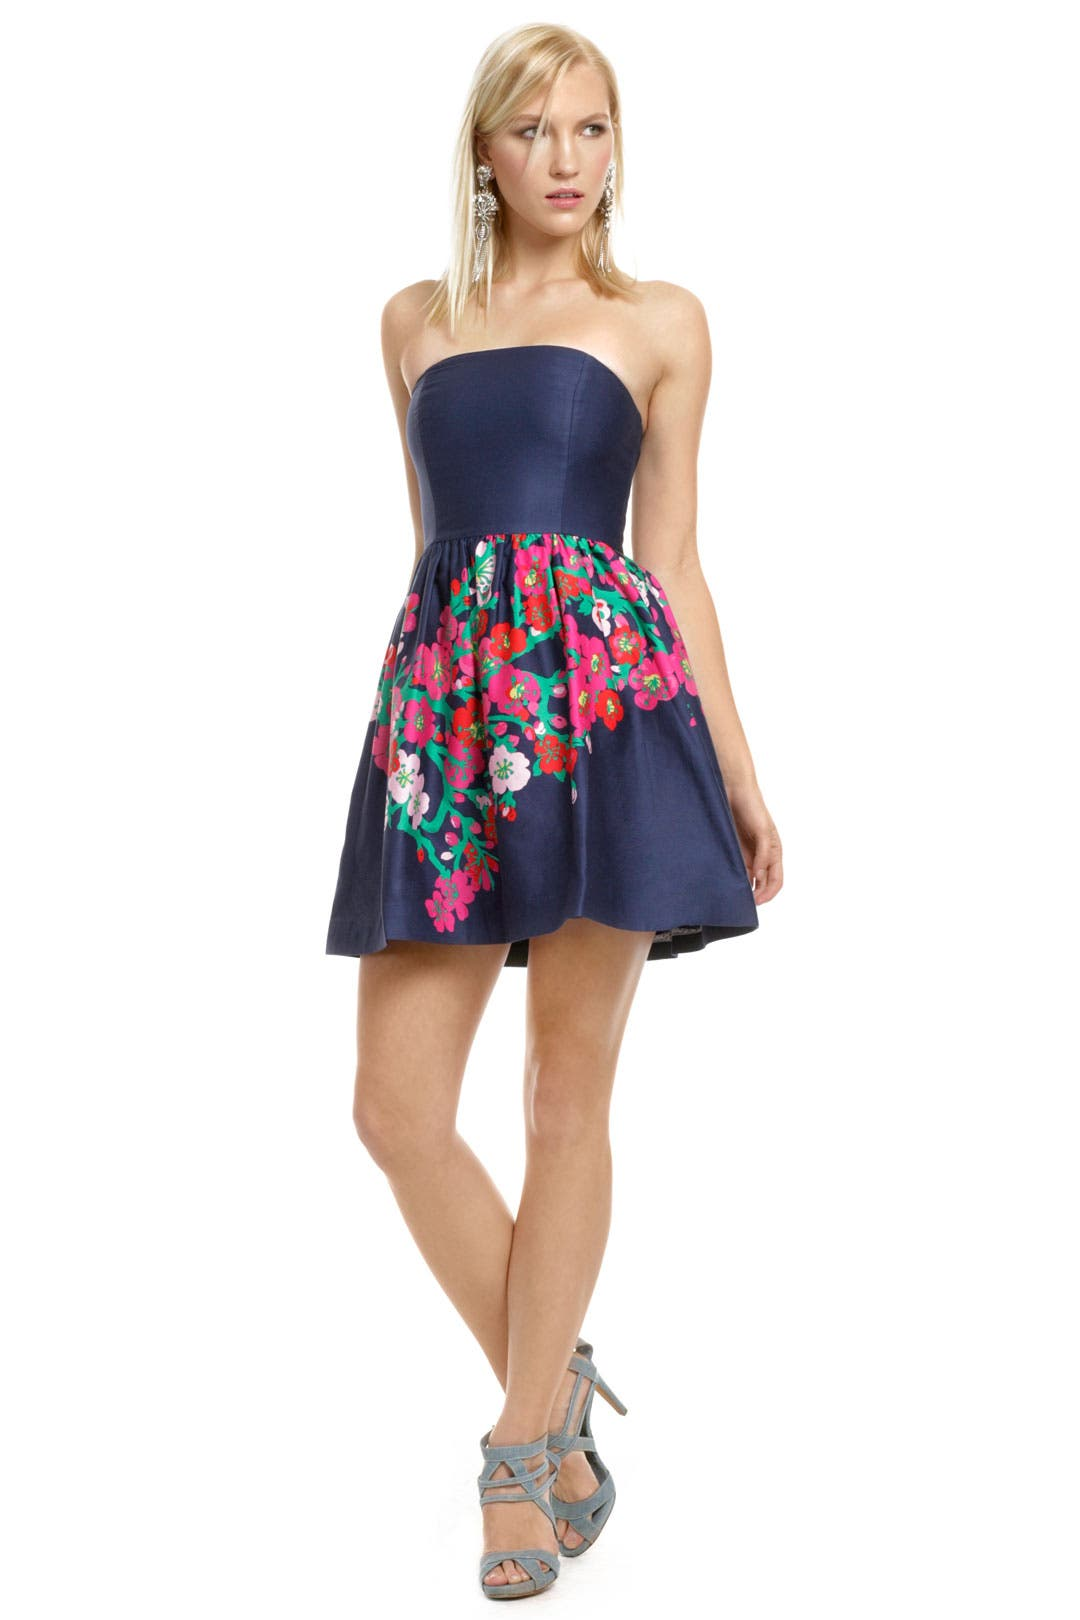 Flowers of Venice Dress by Lilly Pulitzer